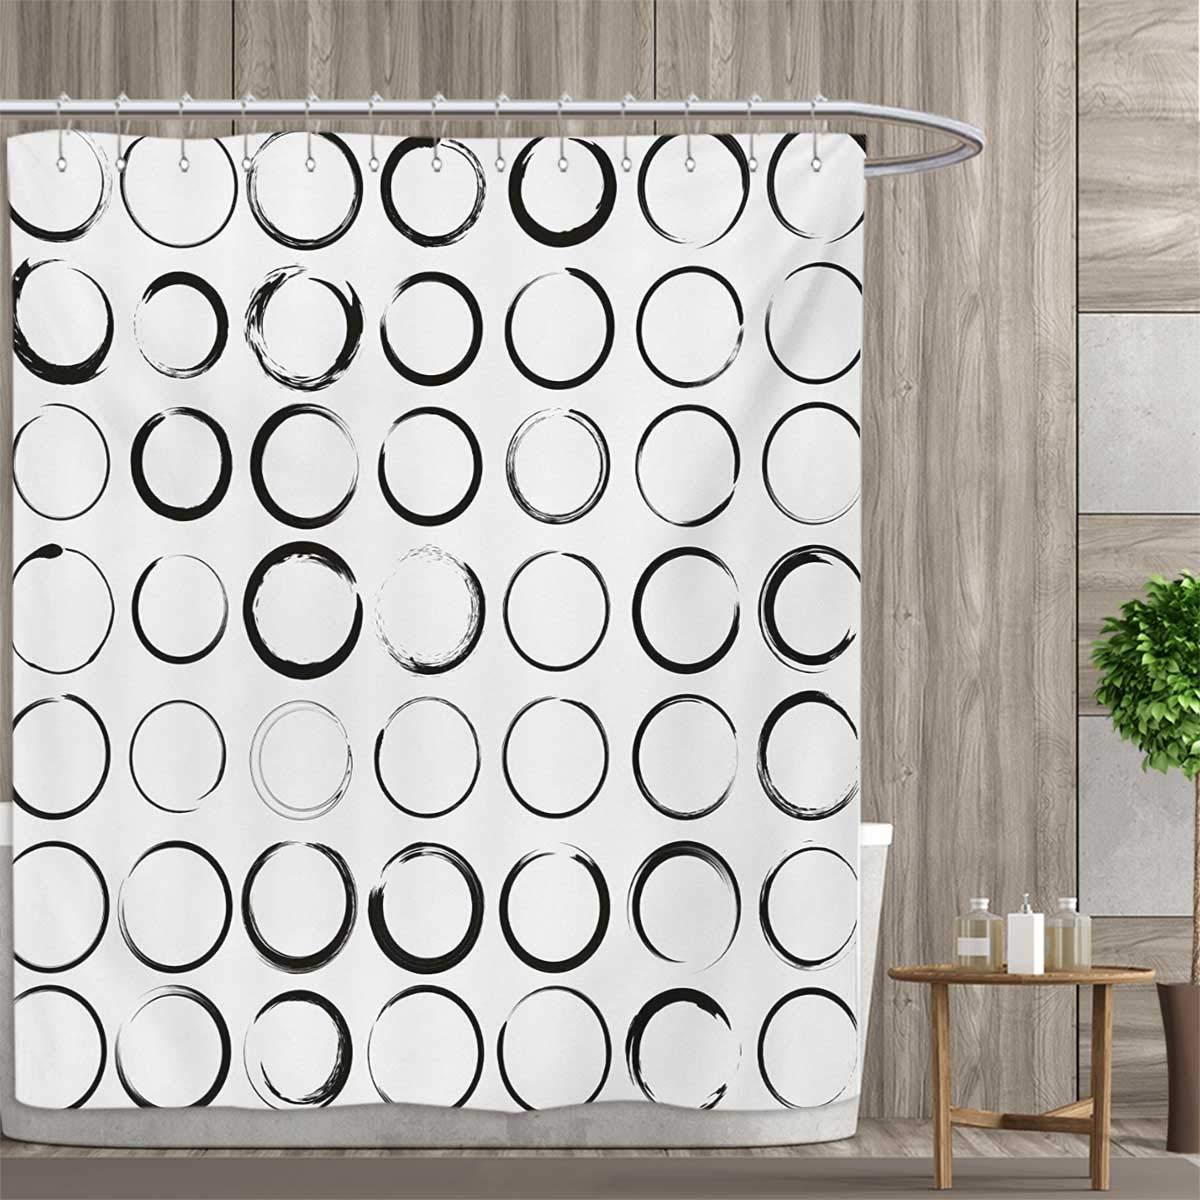 color01 54 x 72 (inch) color01 54 x 72 (inch) smallfly Black and White Shower Curtains Sets Bathroom Circles with Brush Stroke Effects Artistic Hand Drawn Grunge Style Design Satin Fabric Sets Bathroom 54 x72  Black White